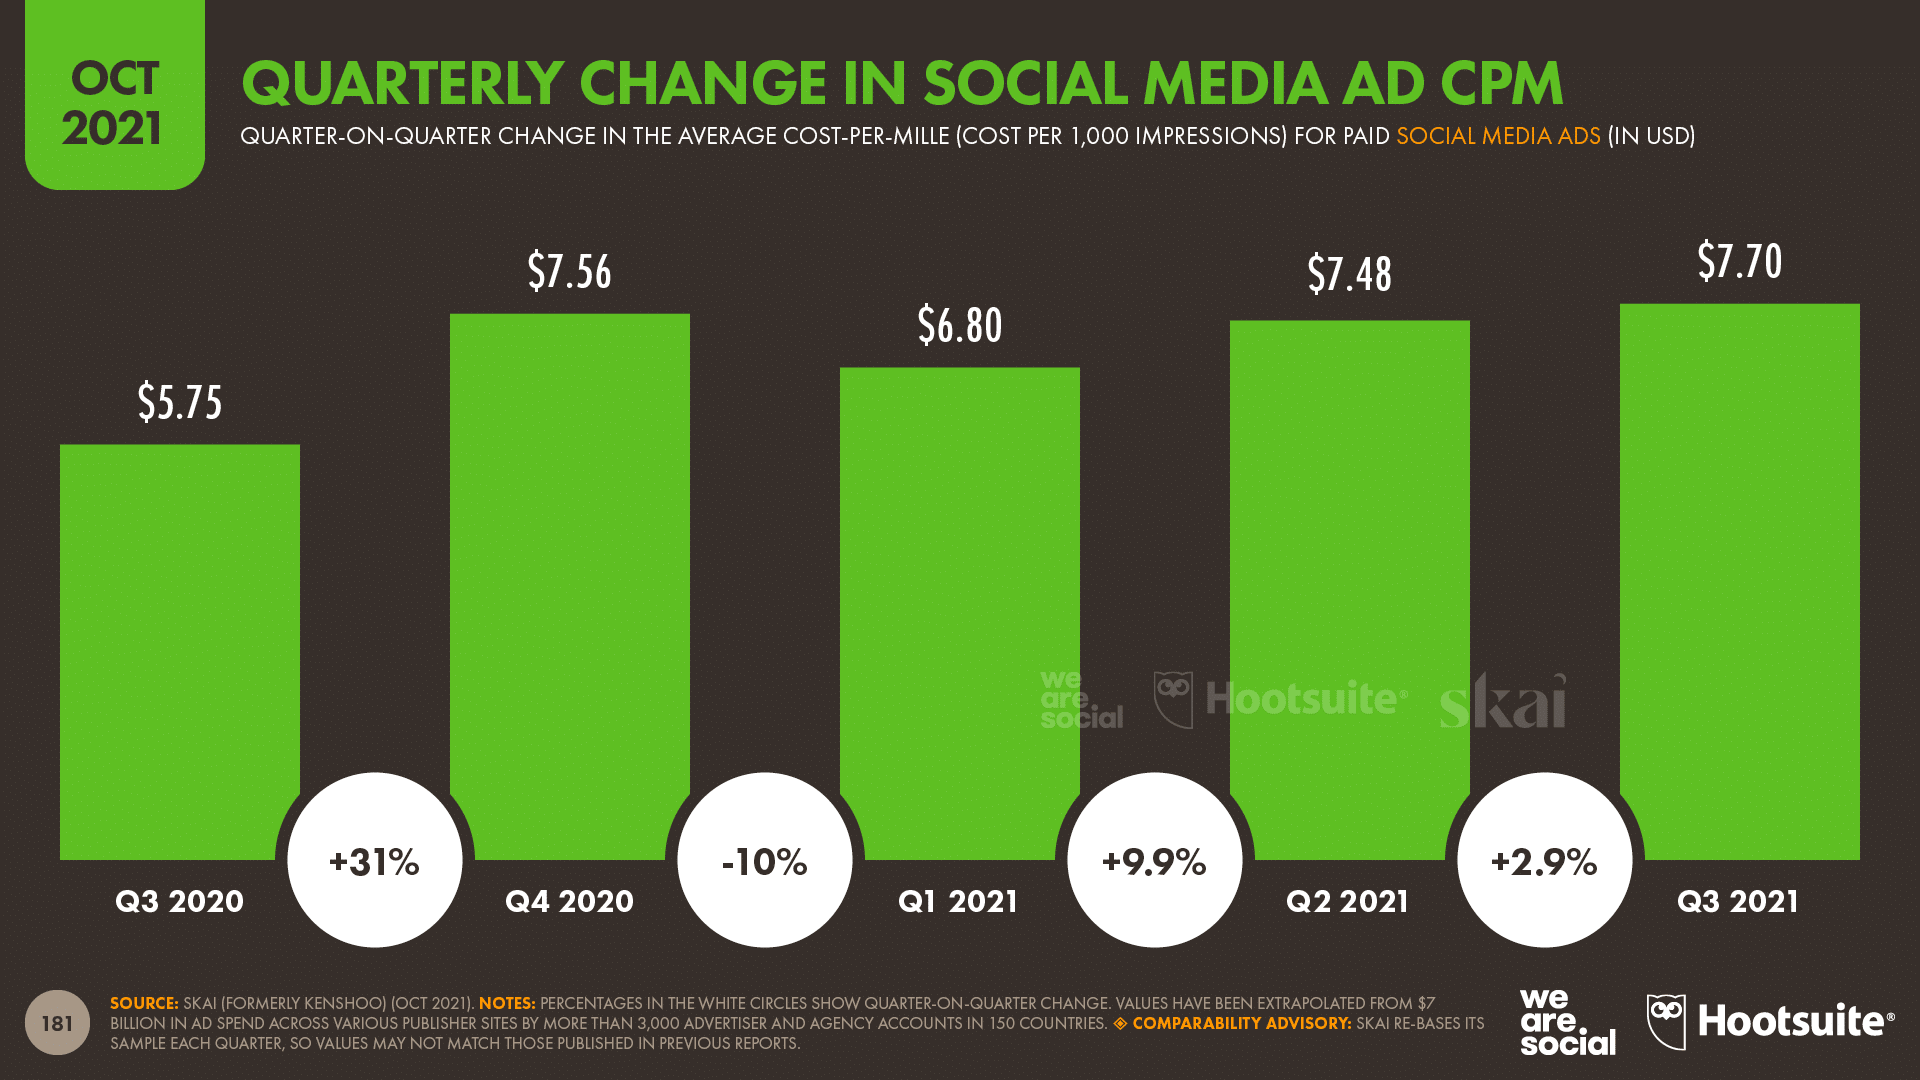 chart showing Quarterly Changes in Social Media Ad CPM